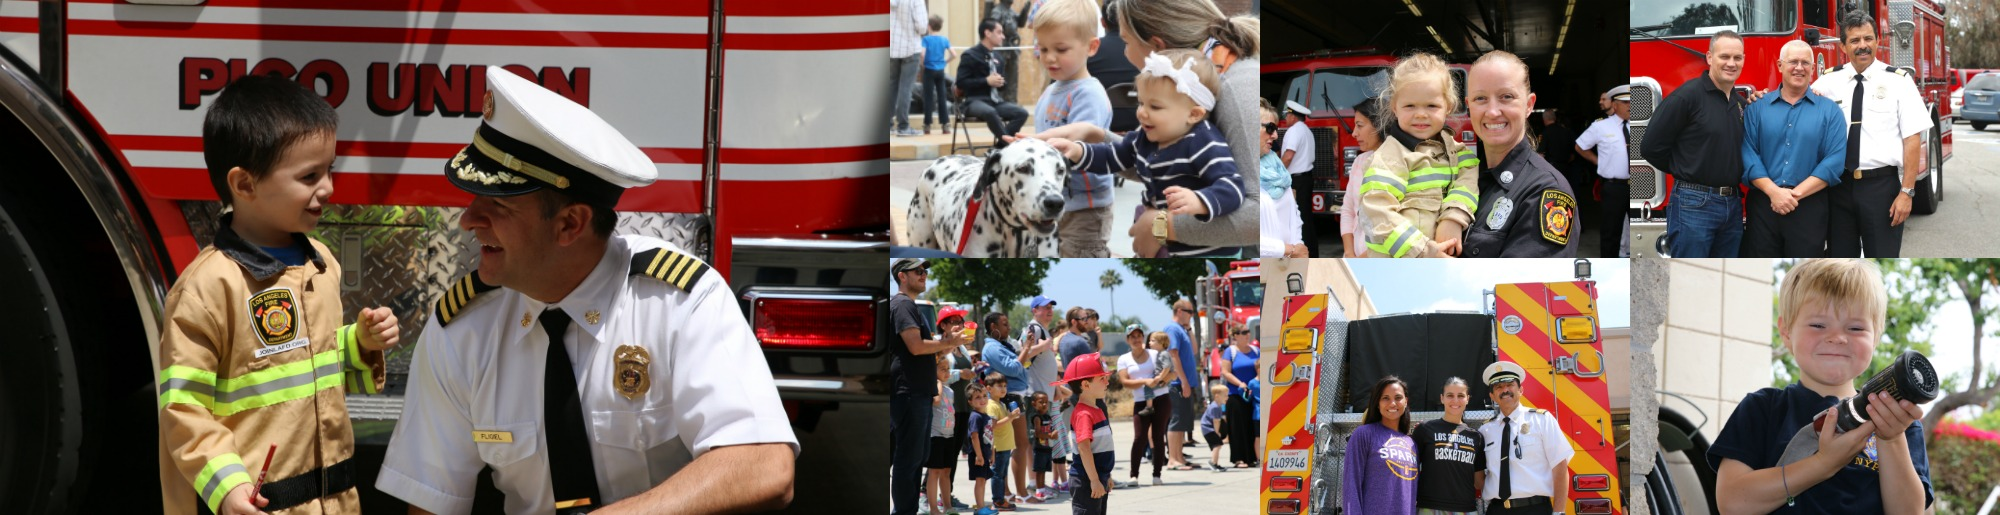 Fire Service Day offered kids of all ages the chance to see their fire department up close and personal.